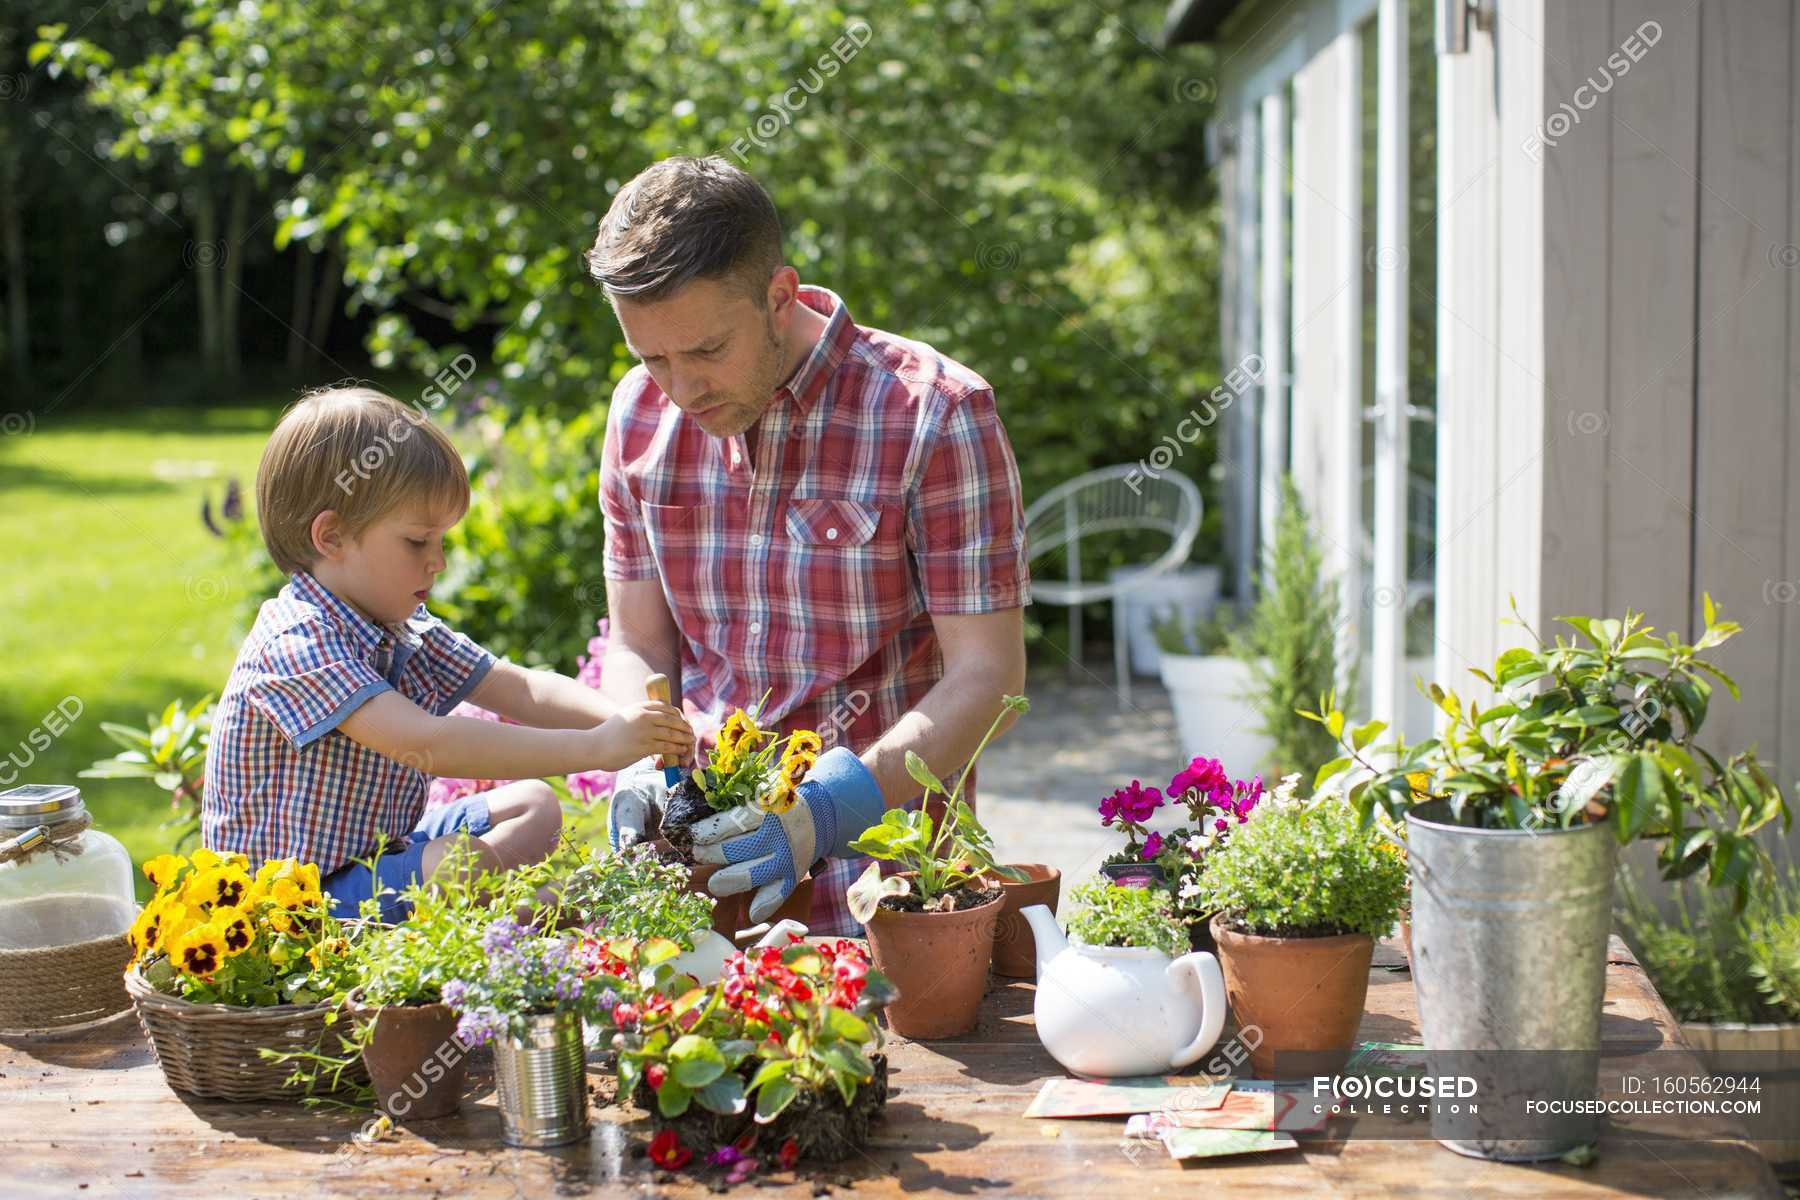 Father And Son Potting Up Plants In Garden Flowers Gardening Stock Photo 160562944